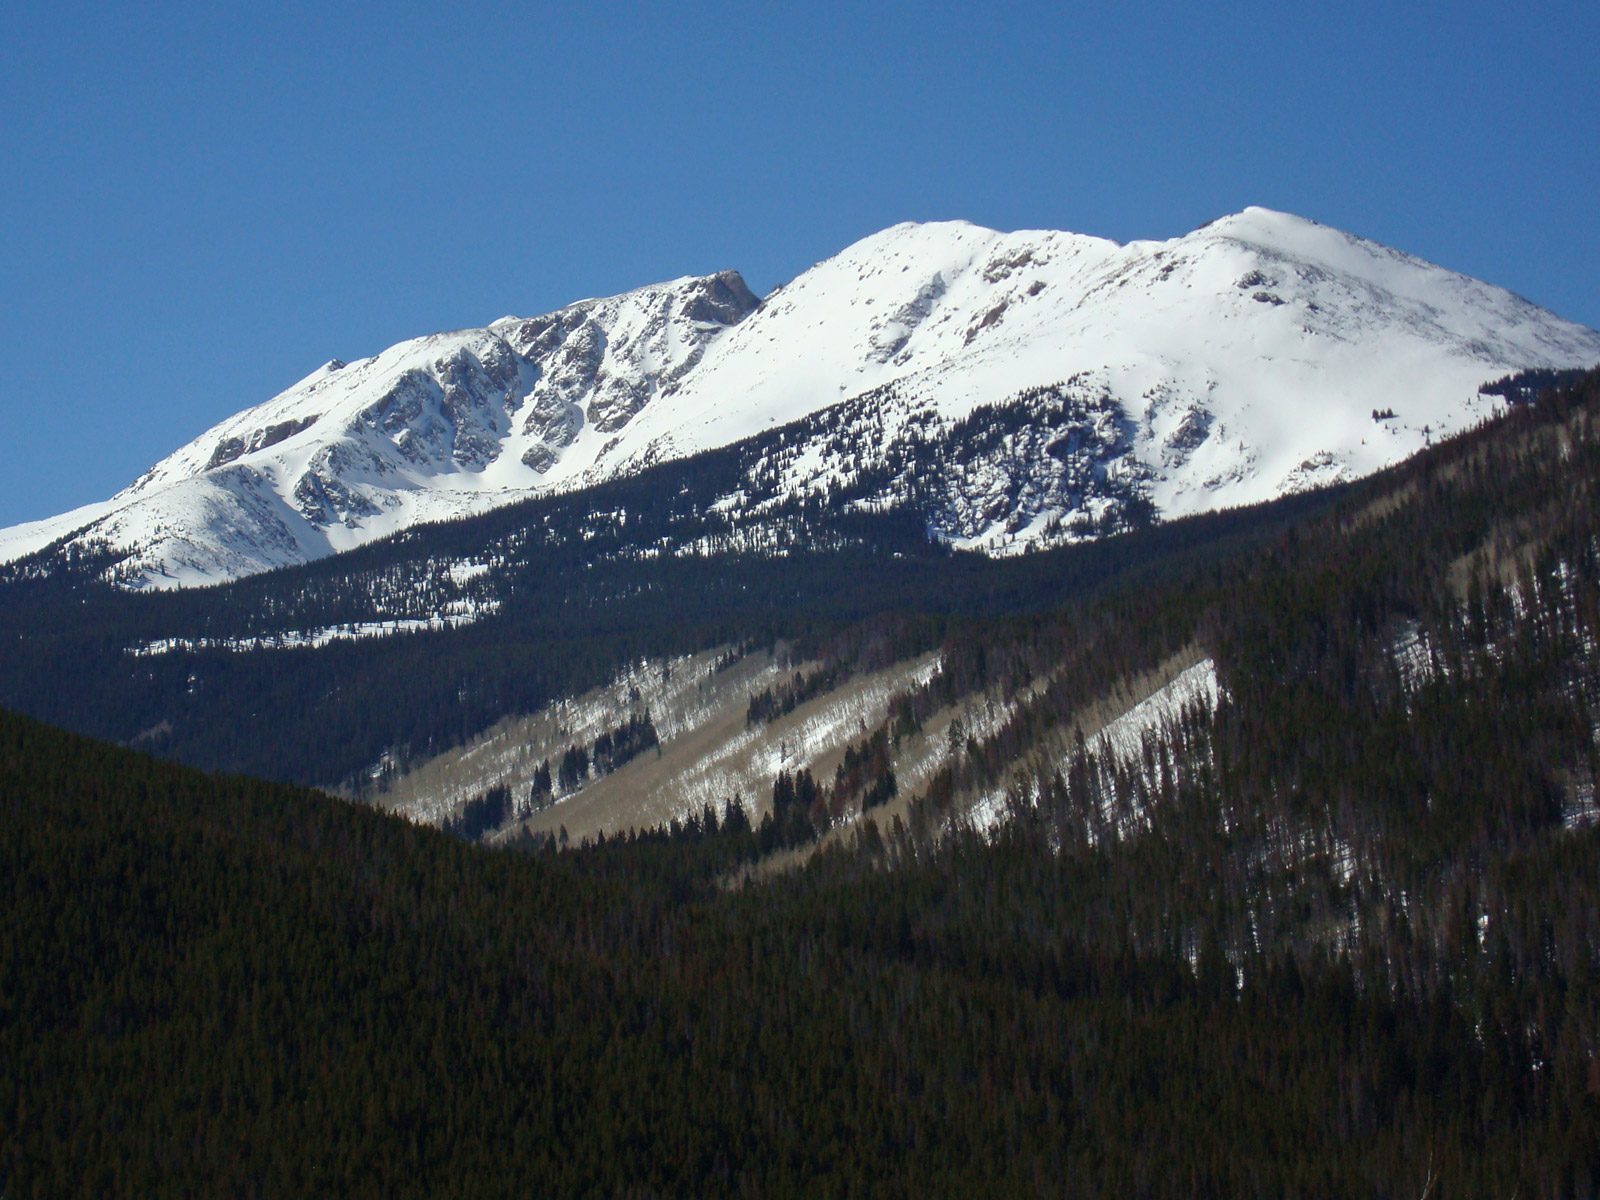 Notch Mountain seen from the northeast.